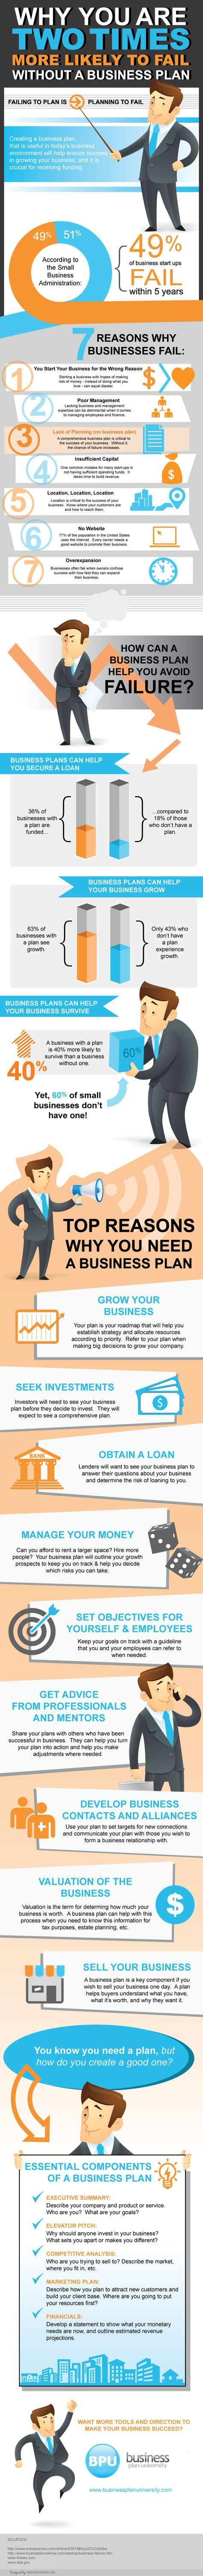 Why You Are Two Times More Likely To Fail Without A Business Plan